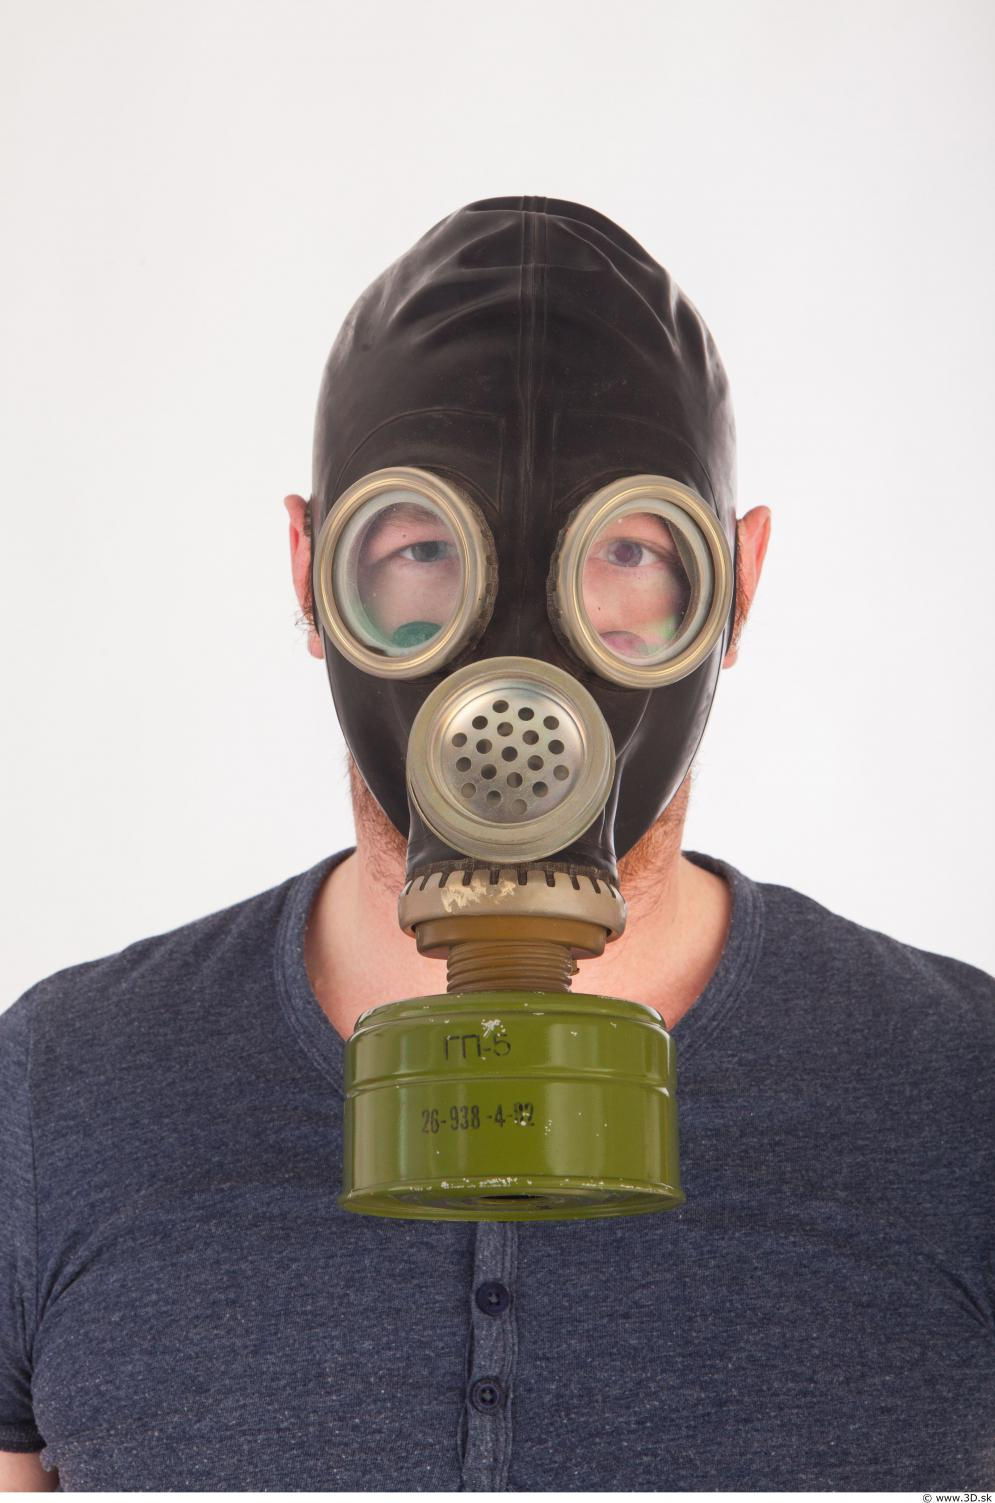 Image from Free Samples / May 2018 - 0013_gas_mask_0013.jpg